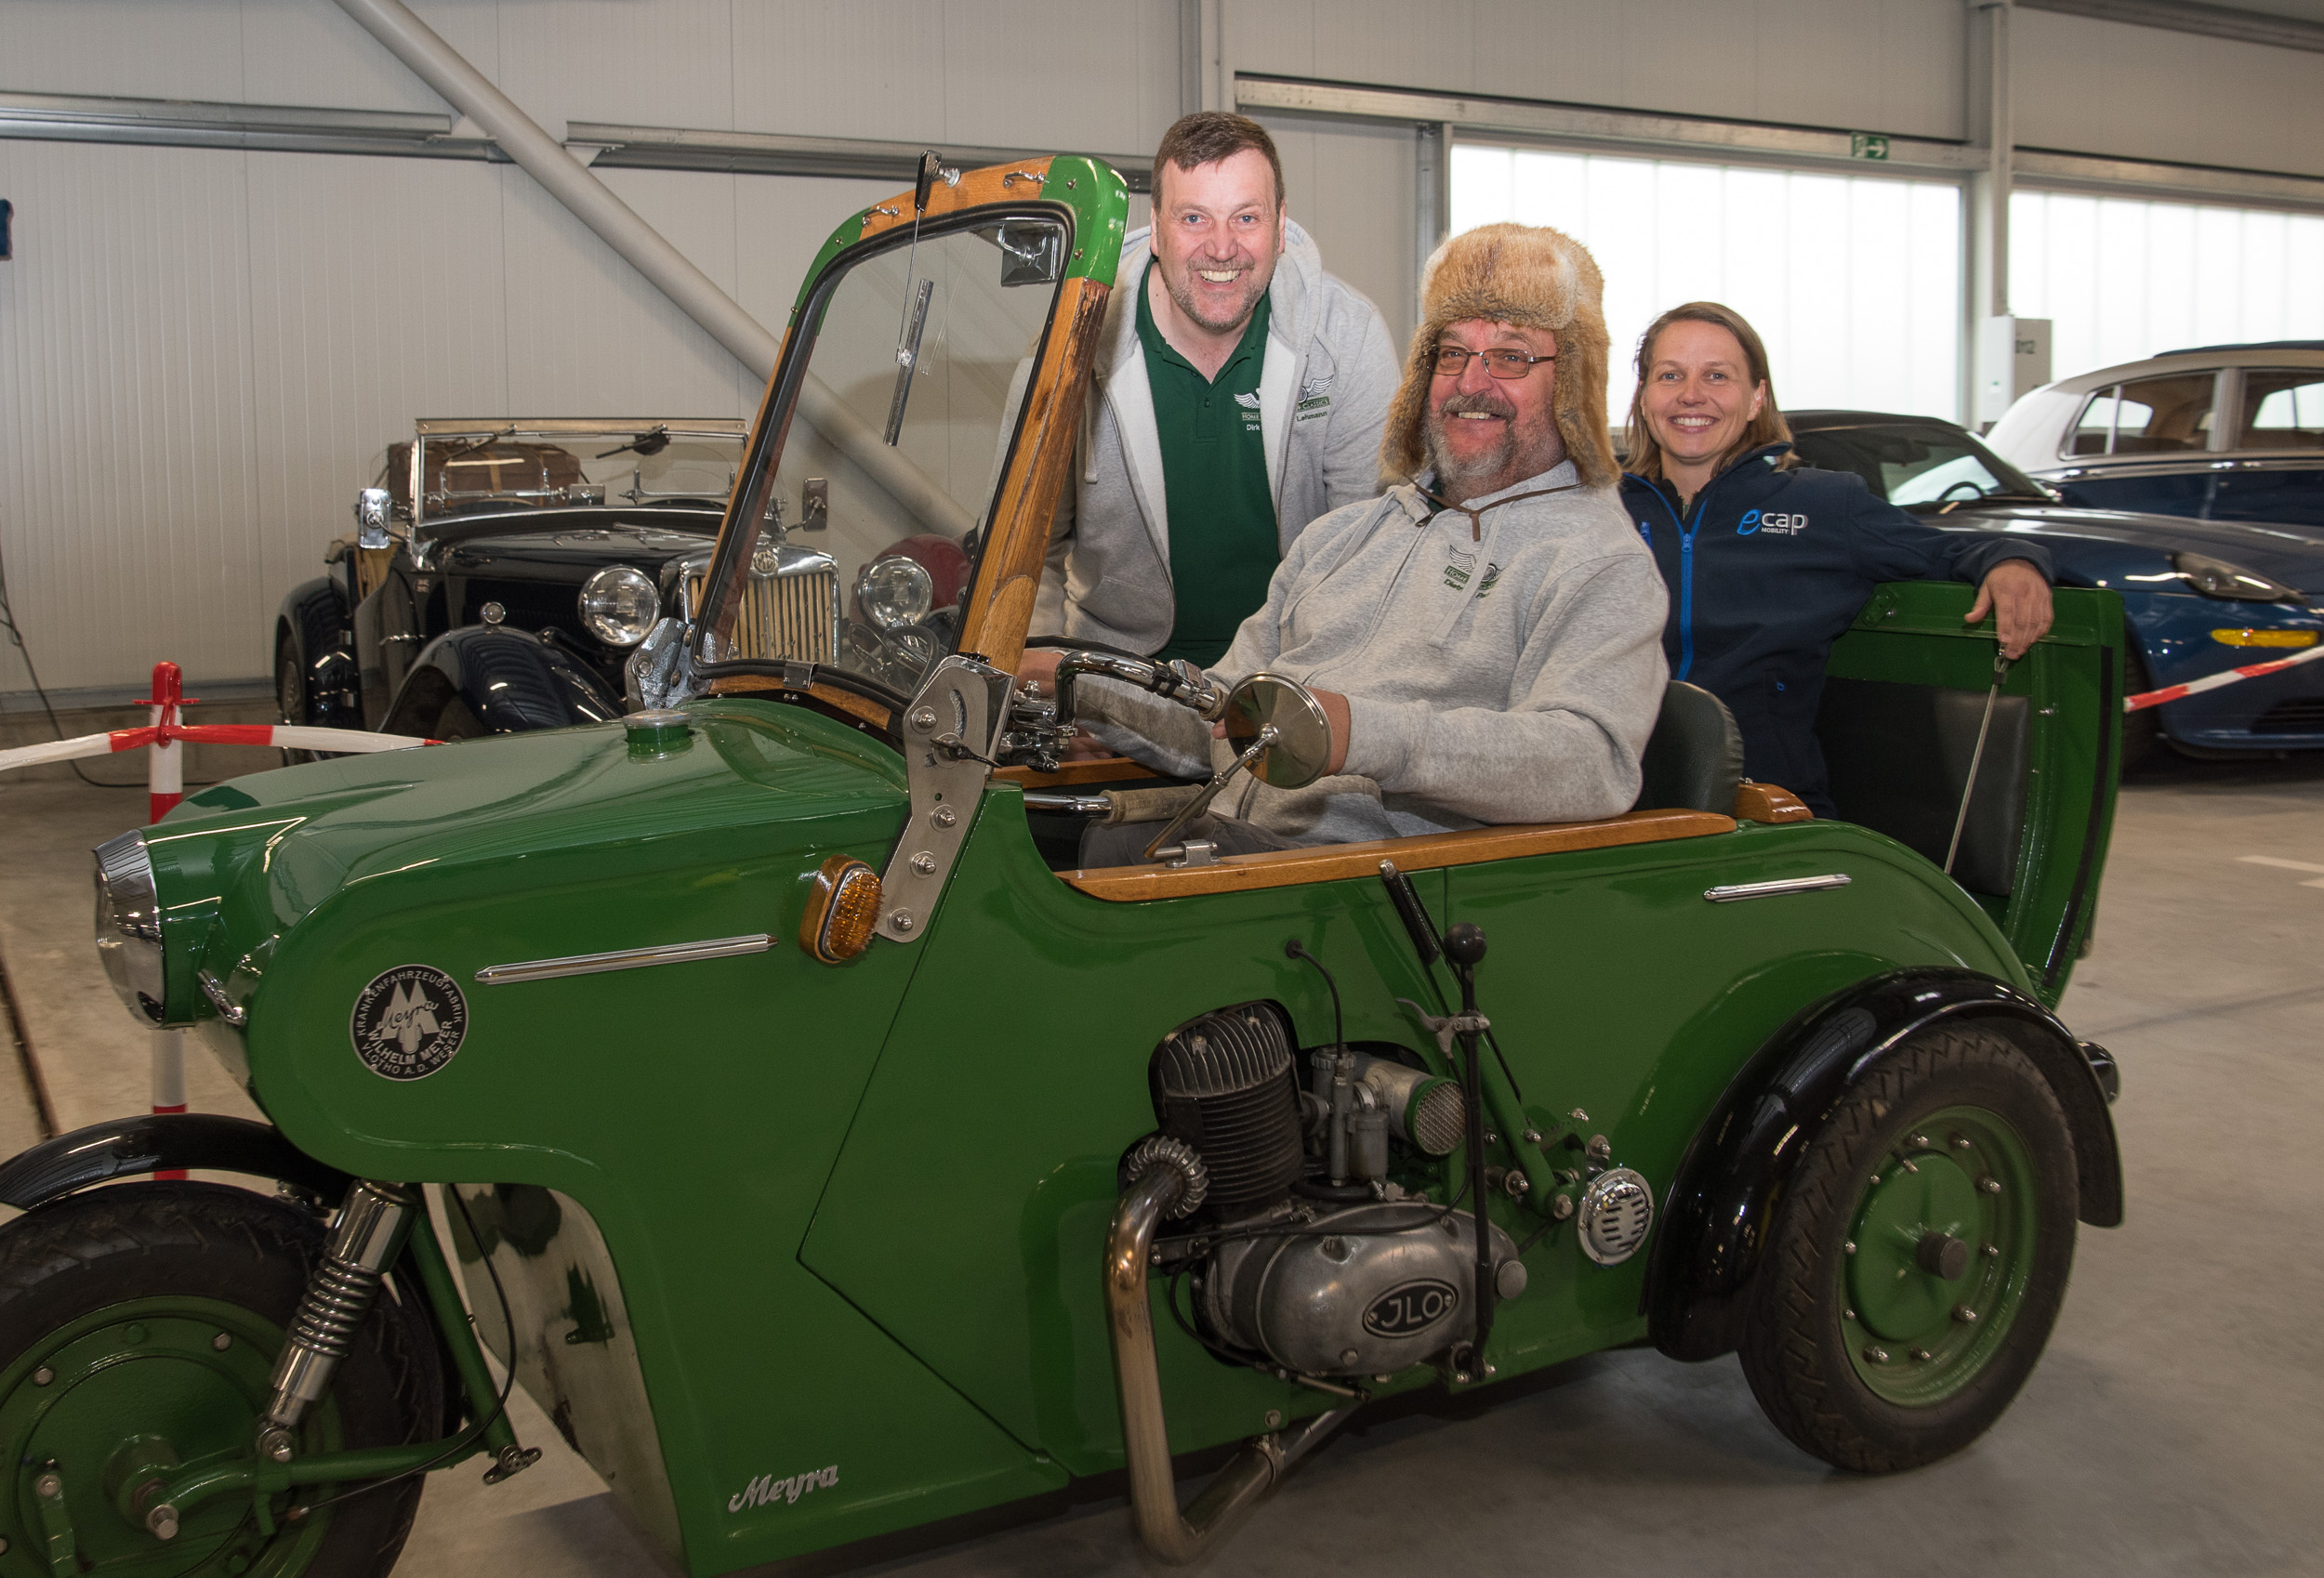 """""""1000 hours to the TÜV"""" motor vehicle MEYRA 1956: from left to right: Dirk Lehmann (owner of HoC and eCap Mobility), Dietmar Pauw (owner of the MEYRA) and Leonie Behrens (Managing Director eCap)""""."""